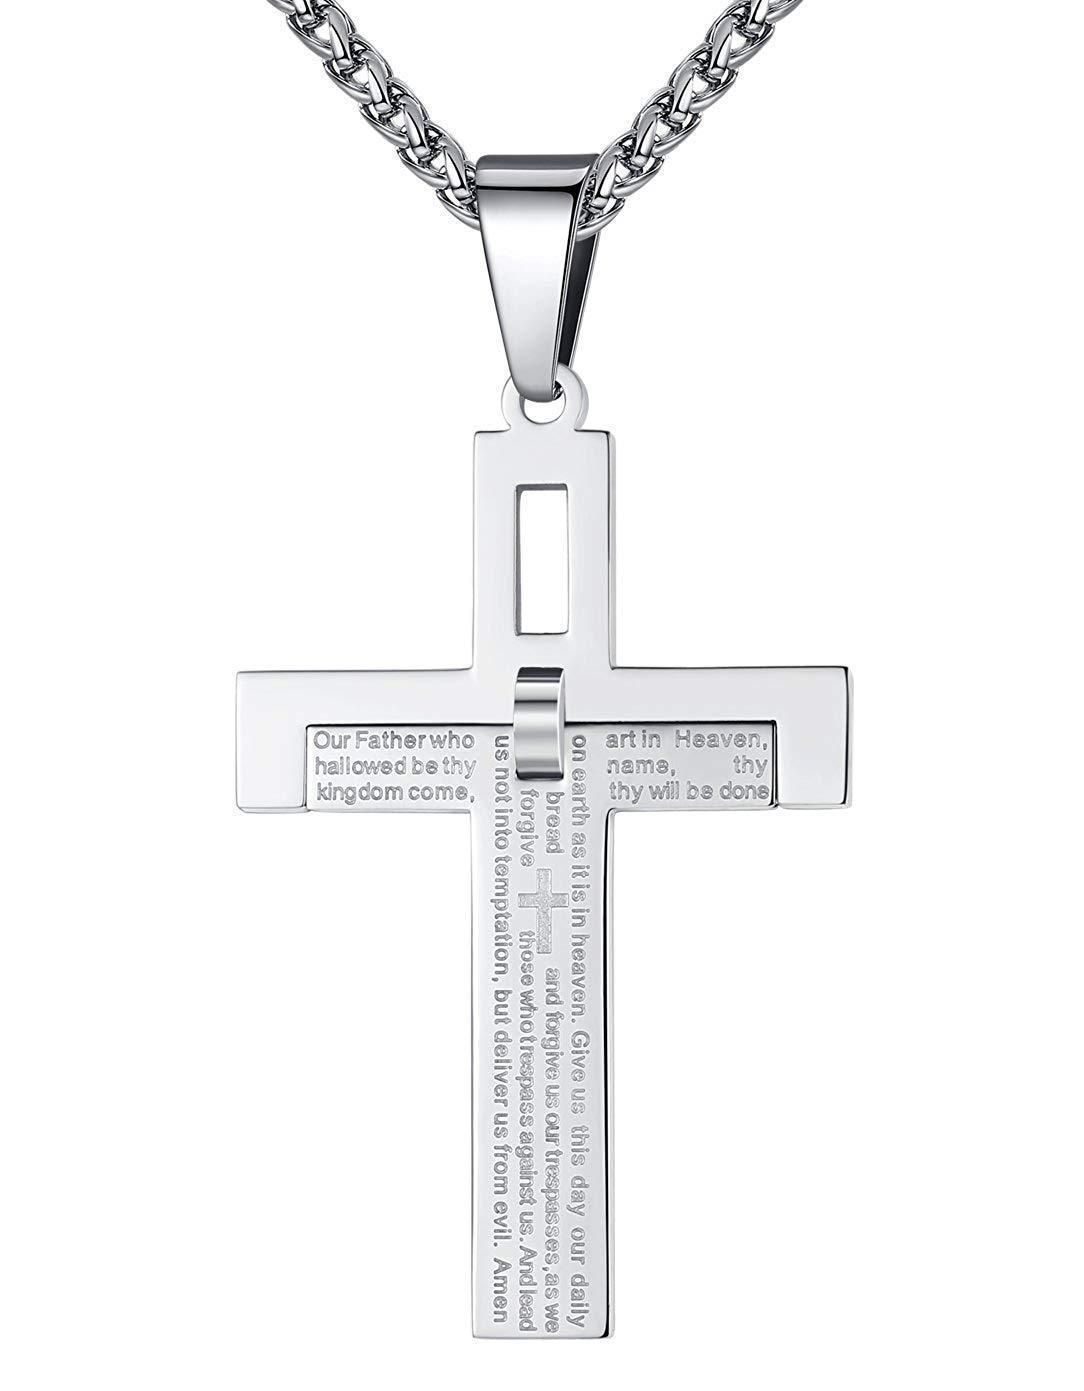 Aoiy Men's Stainless Steel Lord's Prayer Cross Pendant Necklace 24 Wheat Link @ Sons of Odin™ -